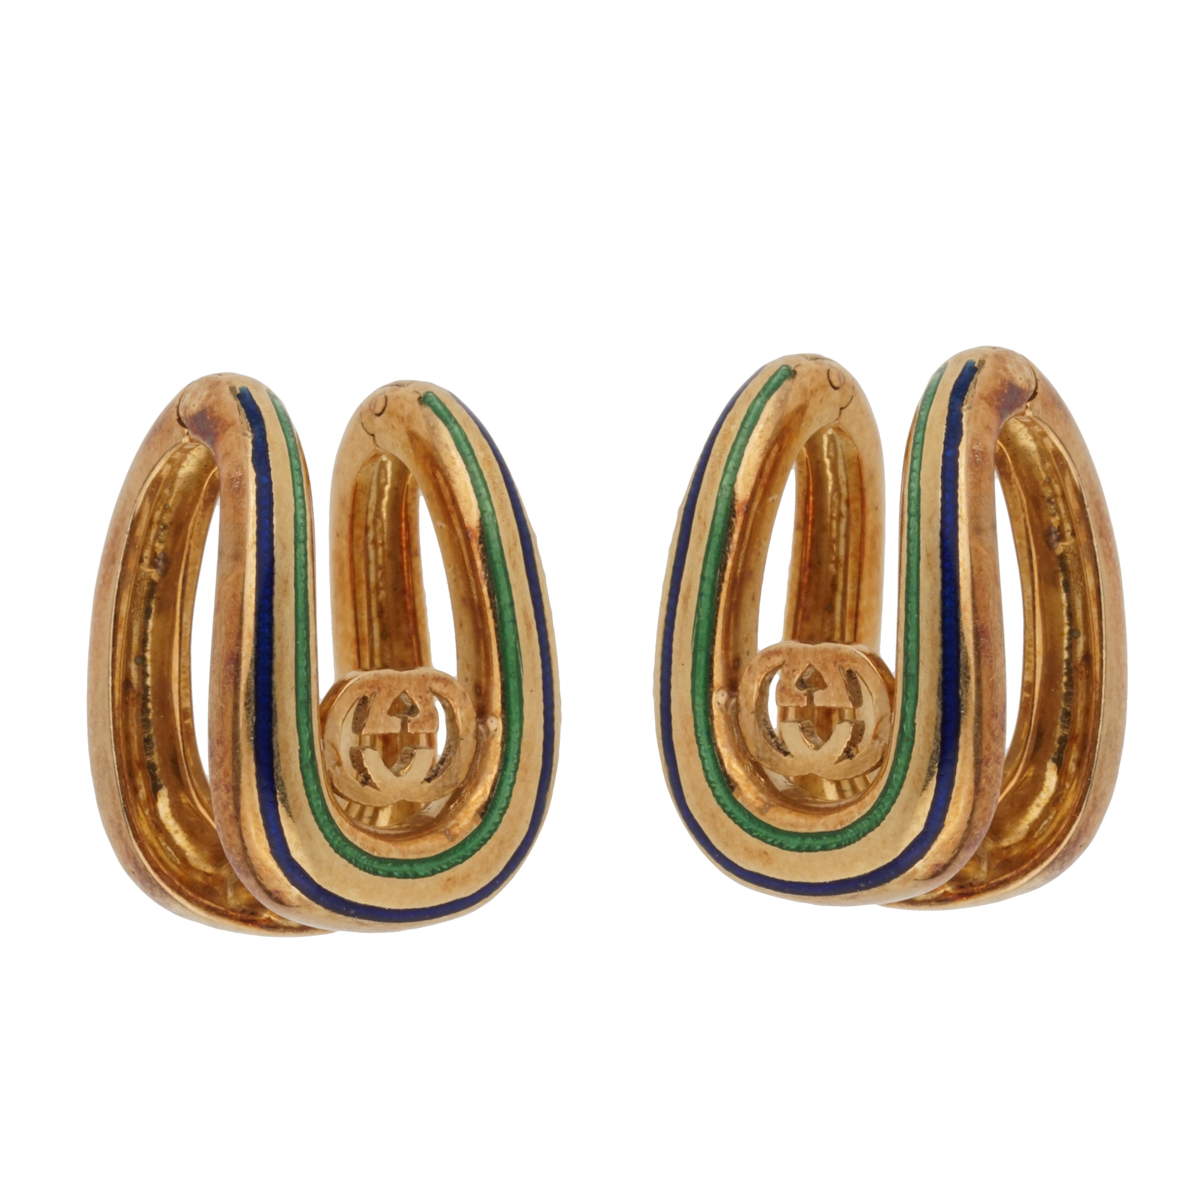 Gucci Vintage Enamel 18k Yellow Gold Cufflinks - Gucci Jewelry